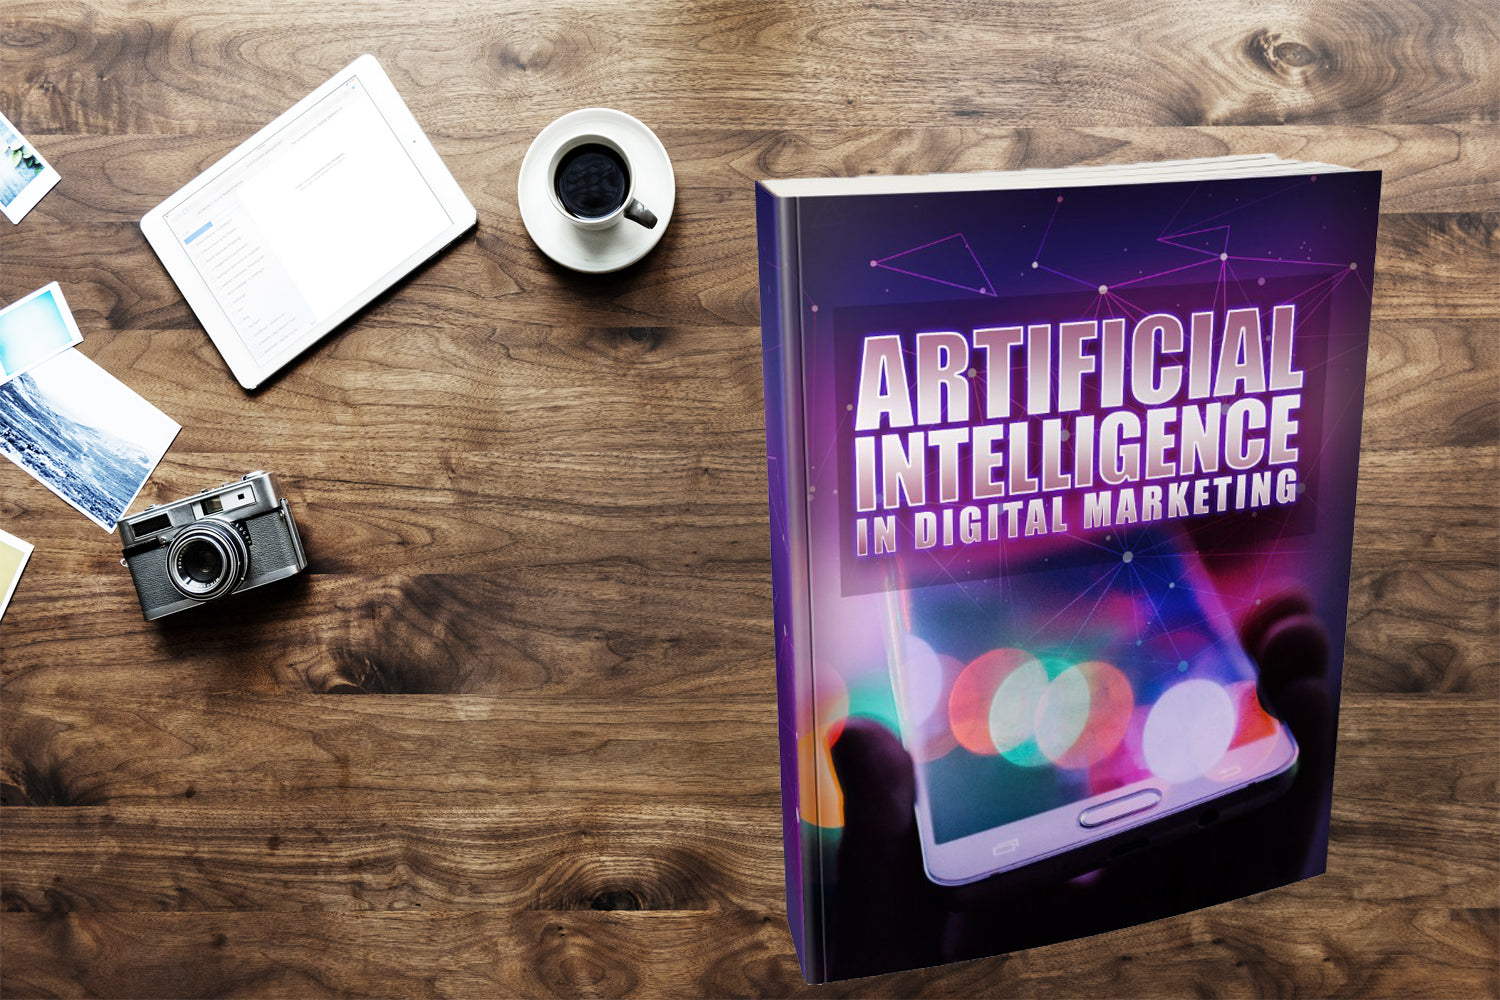 Artificial Intelligence In Digital Marketing - Being Smart In Business Means Knowing What's Just Around The Corner